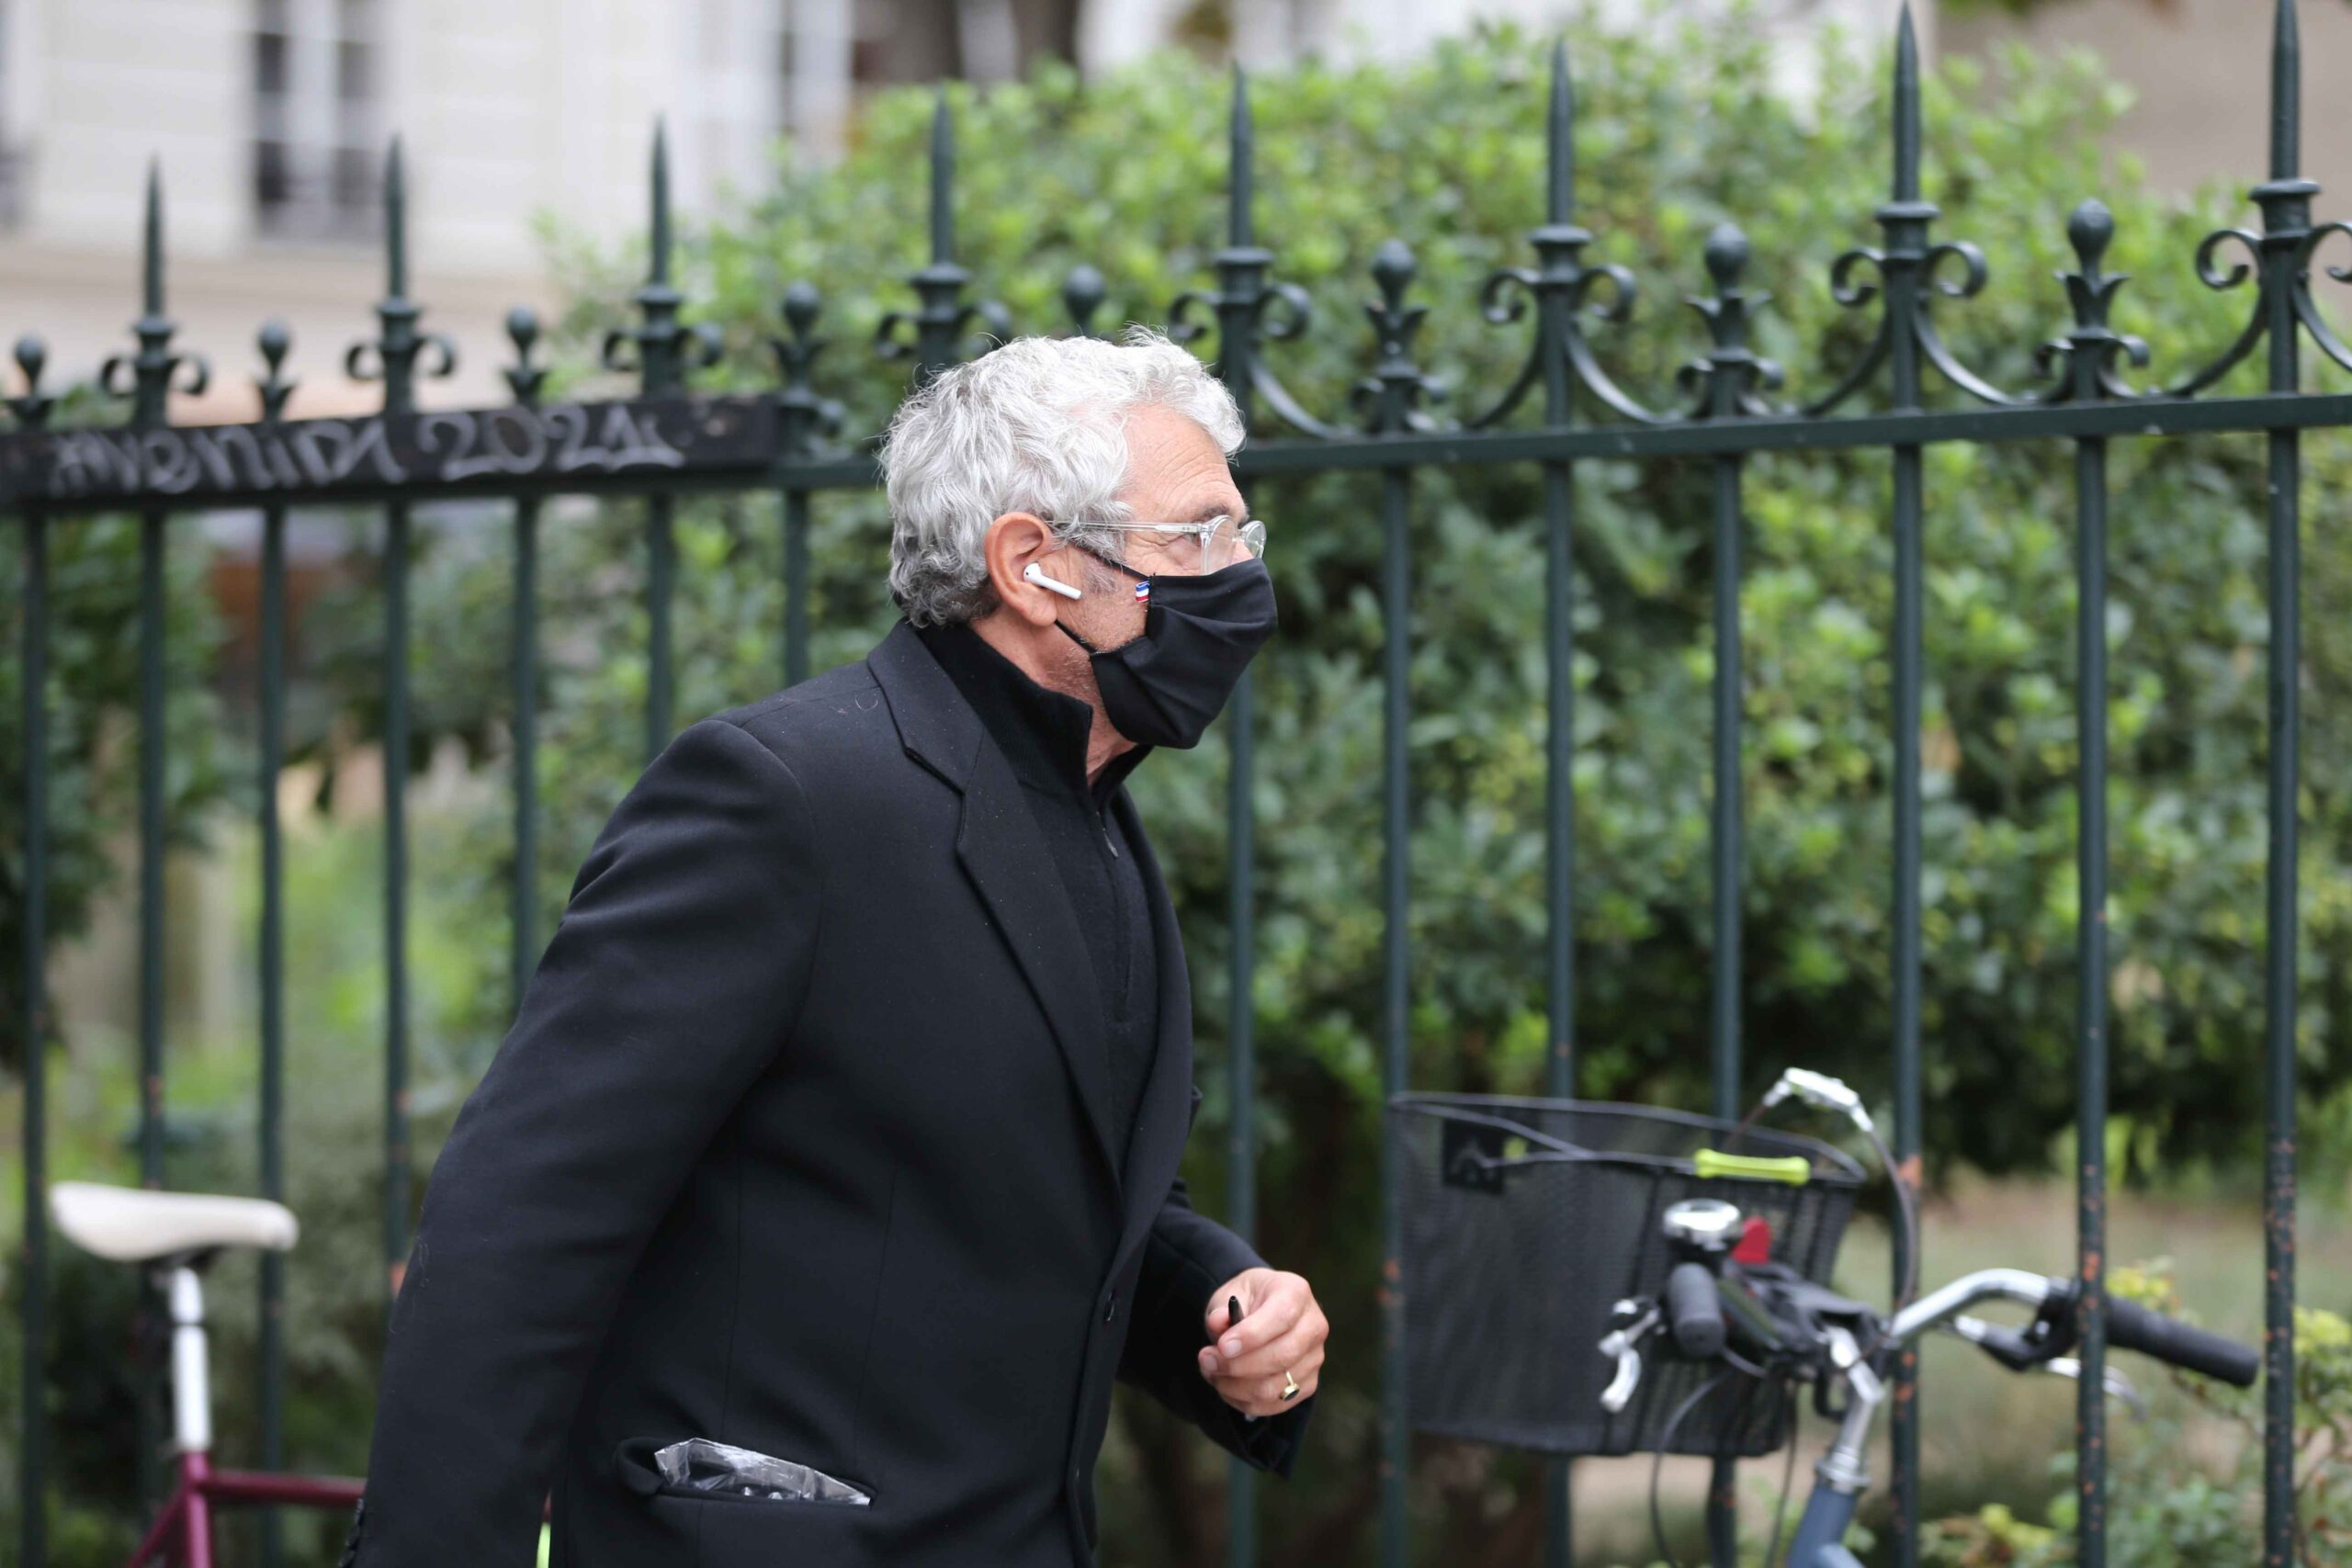 French actor Michel Boujenah arrive for the funerals of French singer Juliette Greco, at the Saint-Germain-des-Pres church in Paris, on October 5, 2020. Legendary French singer Juliette Greco, whose career spanned over half a century, died aged 93, on Sept